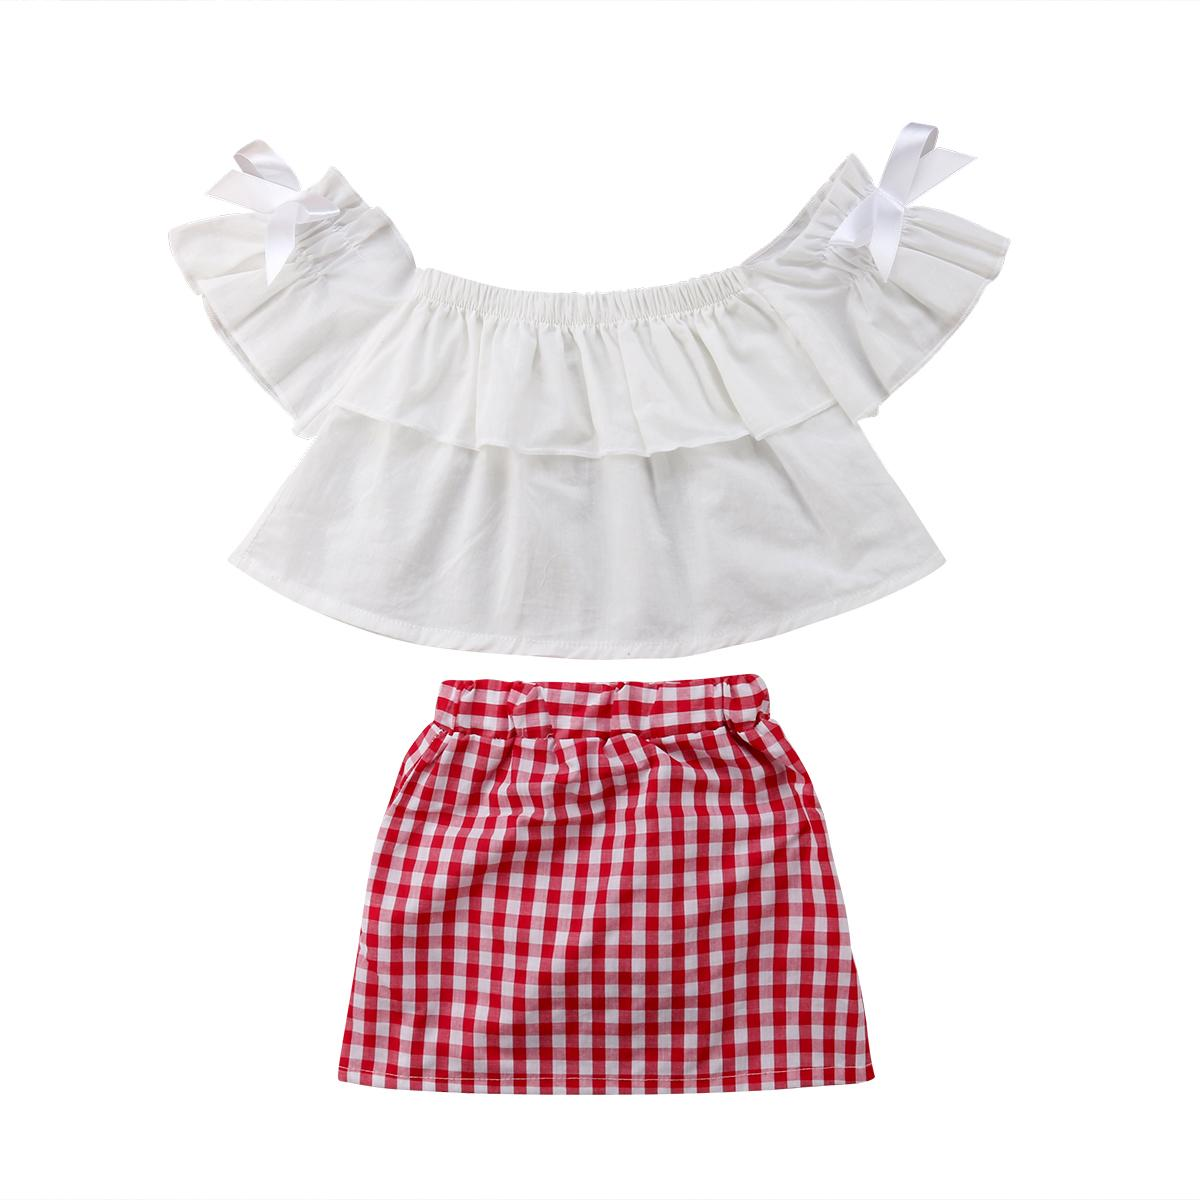 ca90a71f94 2019 2018 Kids Baby Girl Off Shoulder White Top Lattice Red Plaid Skirt  Outfits Summer Cute Clothes From Sightly, $30.86 | DHgate.Com